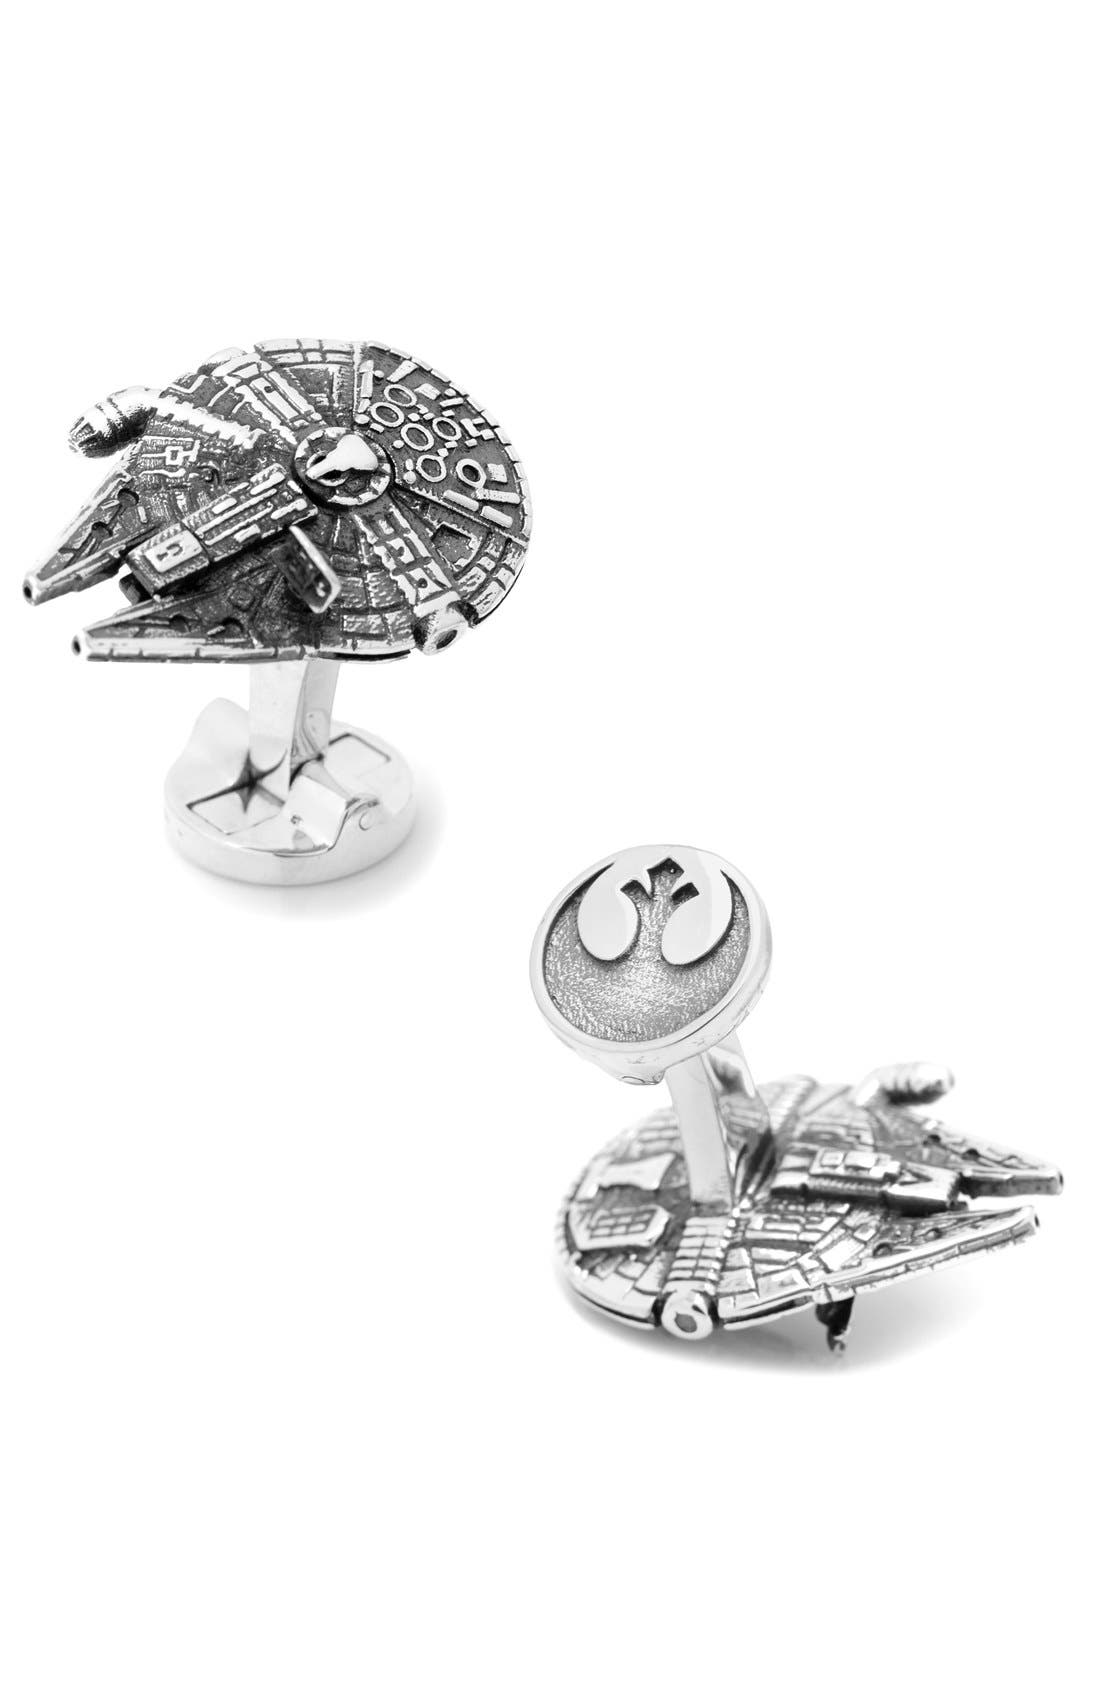 CUFFLINKS, INC. Star Wars Millennium Falcon Cuff Links